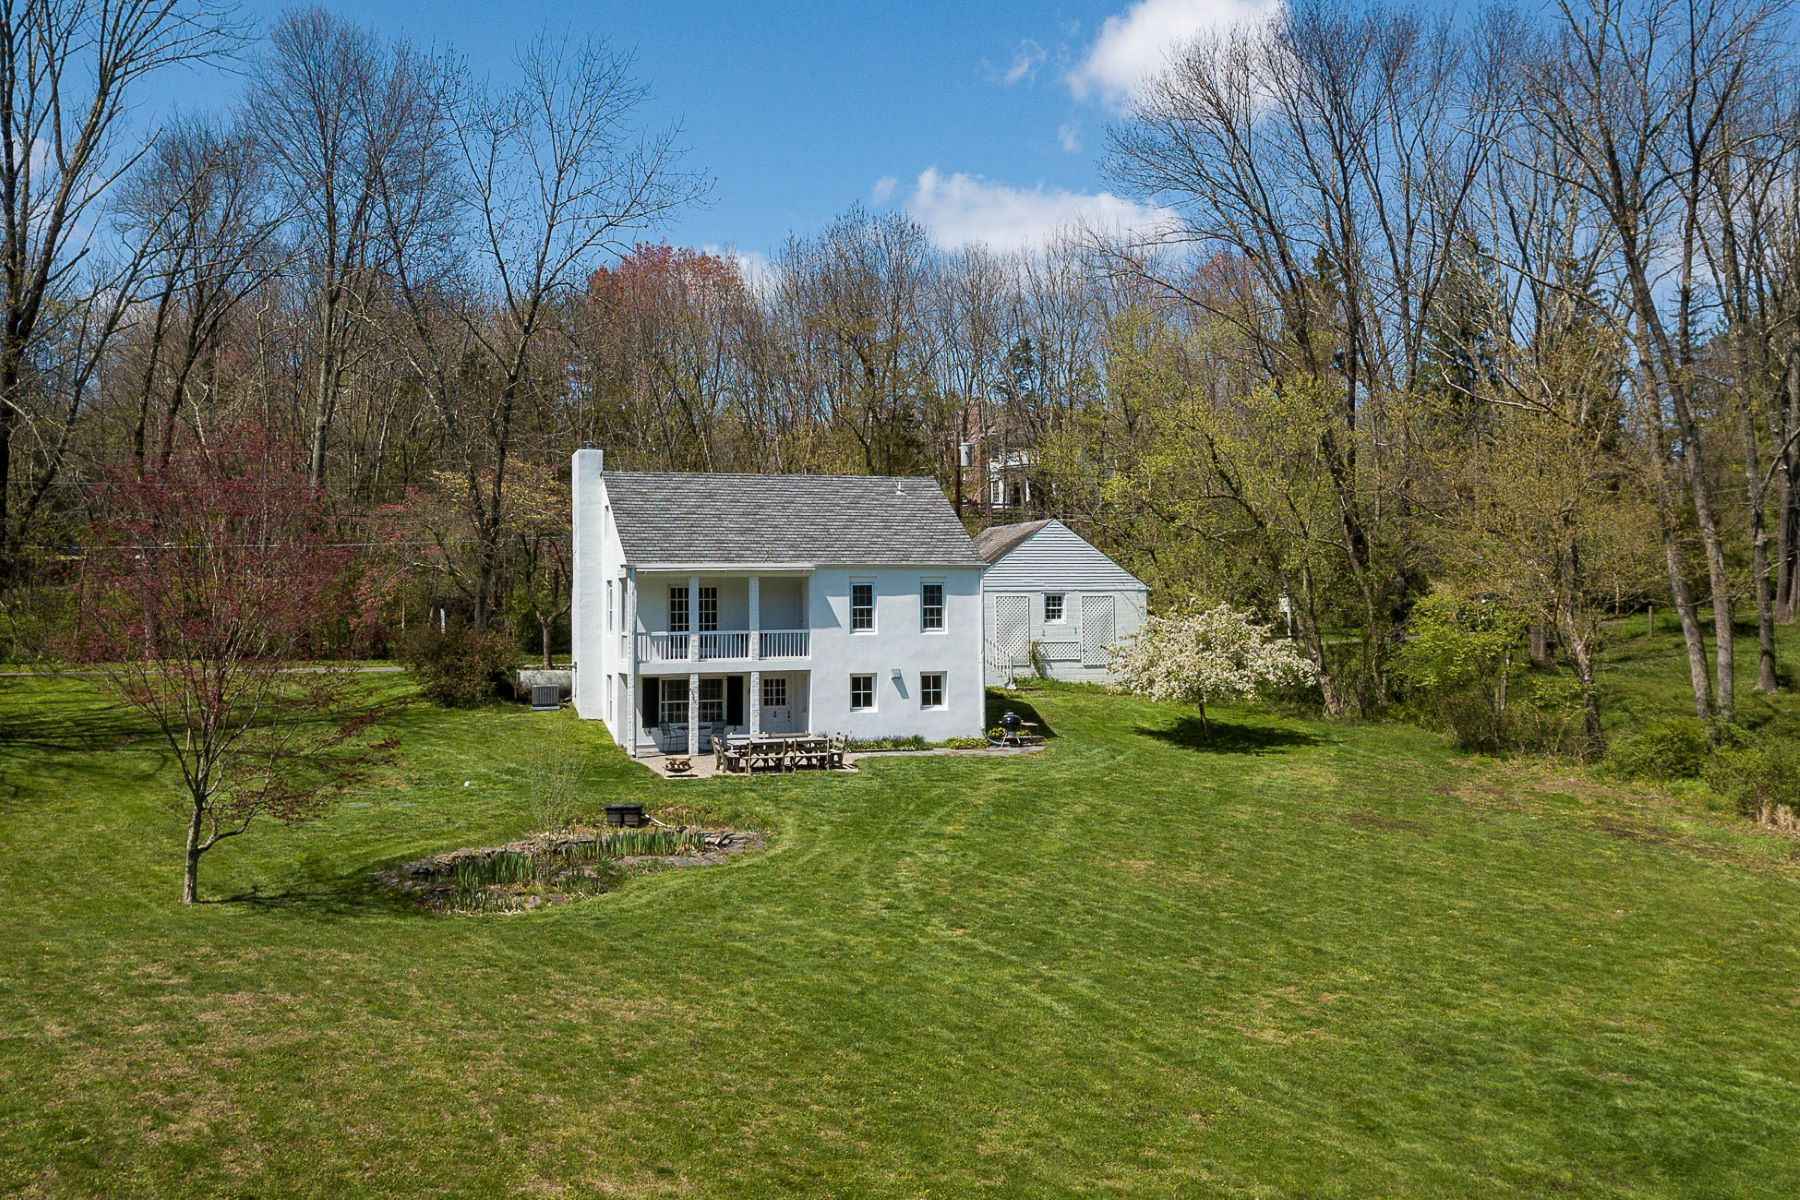 Single Family Homes for Sale at Pretty as a Storybook Picture 262 Carter Road, Princeton, New Jersey 08540 United States